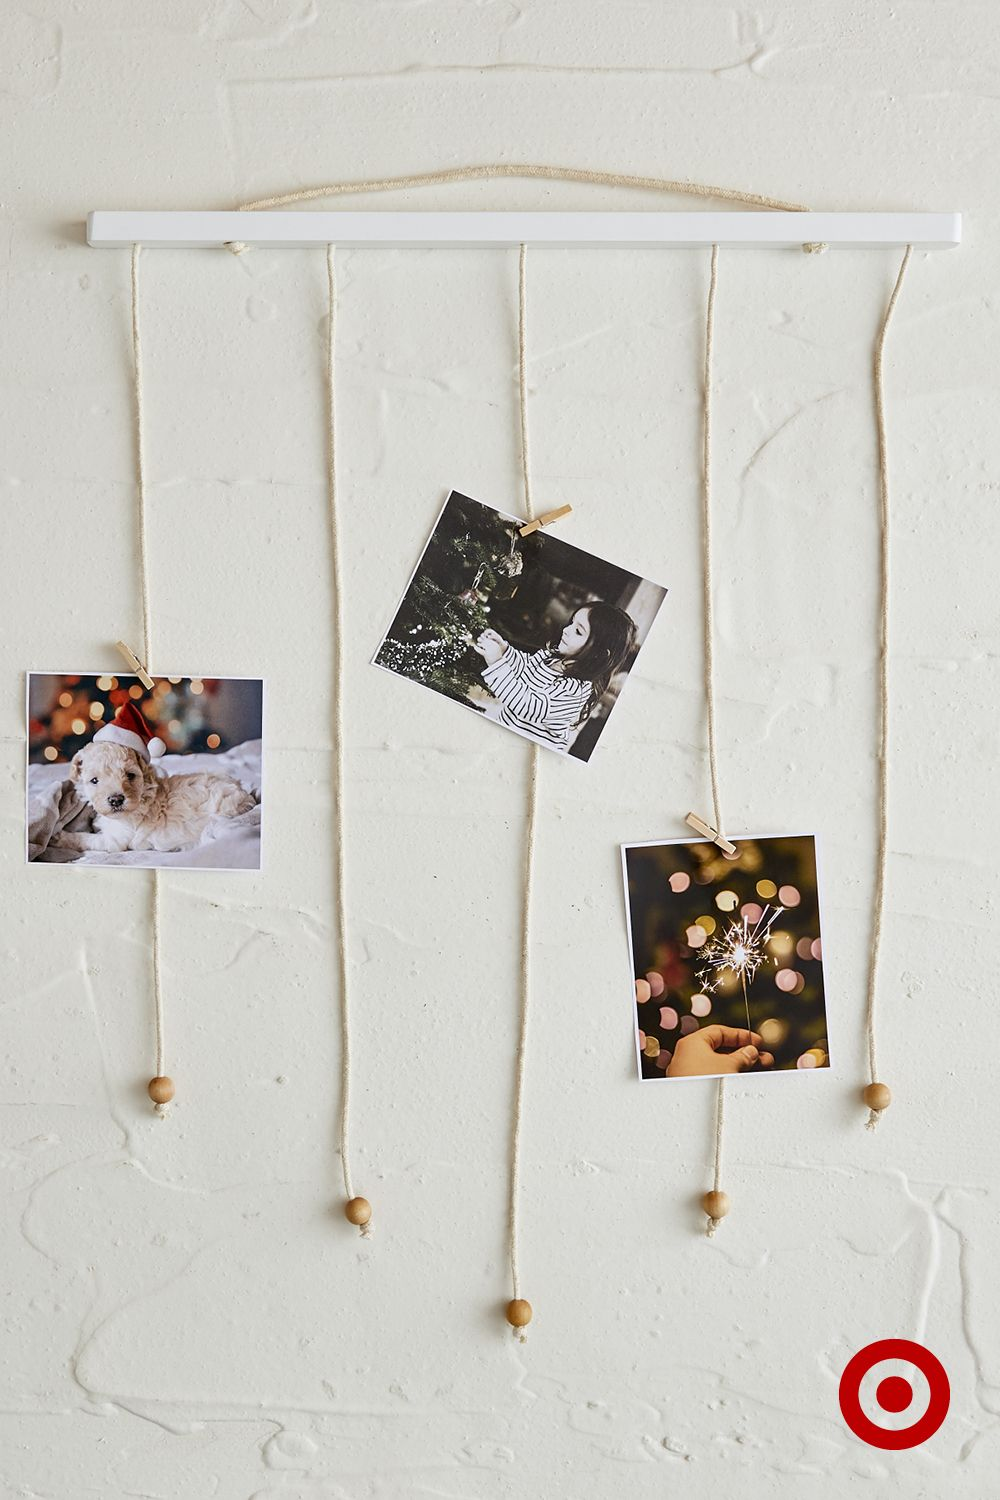 Vertical Clothesline For Hanging Photos Notes And All Your Favourite Memories Clothesline Picture Display Craft Activities For Kids Handmade Decorations